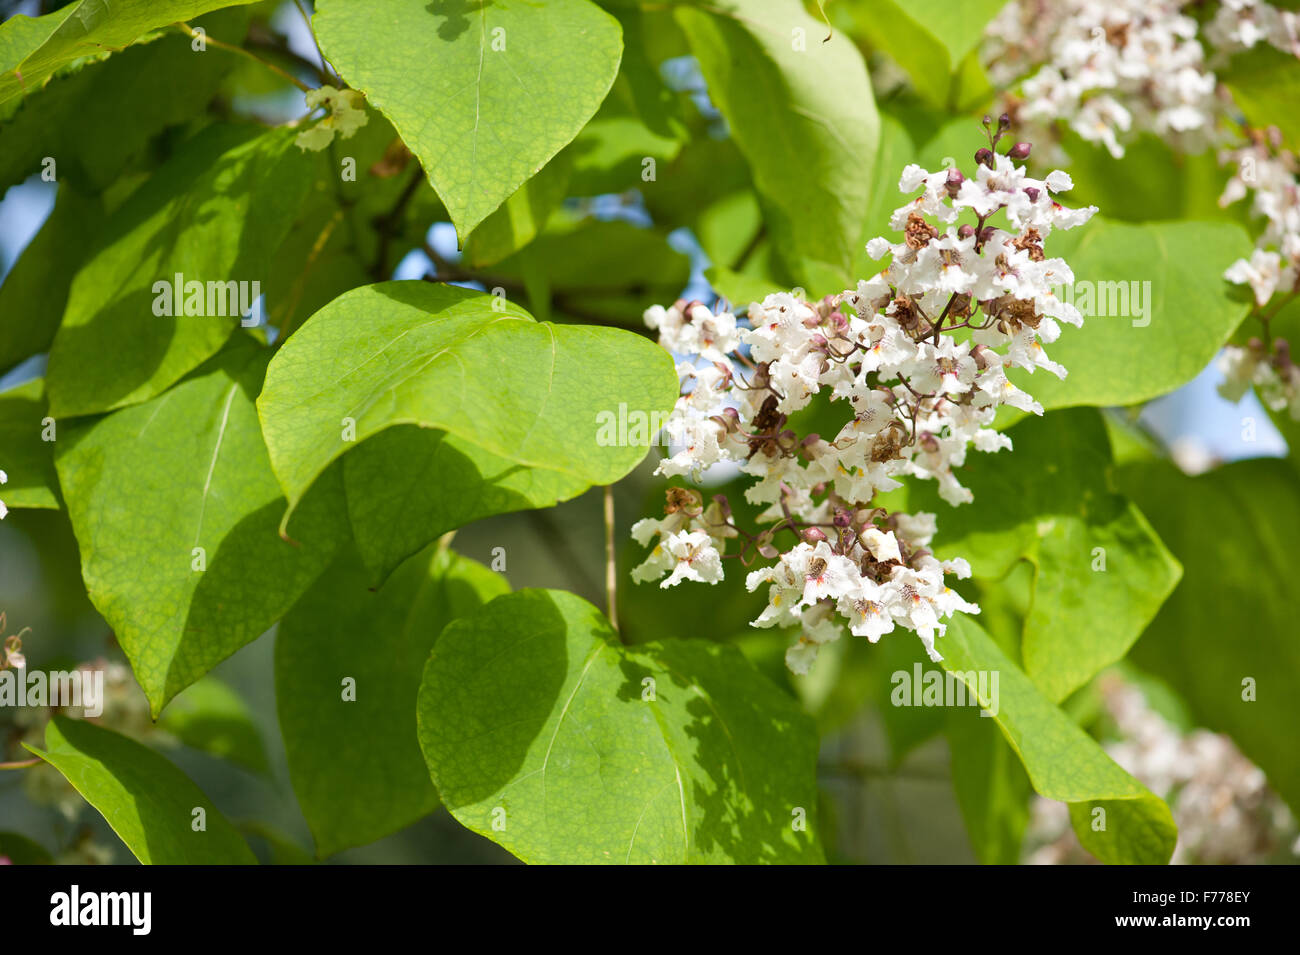 Tubular white flowers stock photos tubular white flowers stock catalpa flowering deciduous tree blooming white inflorescences closeup tubular flowers show in july mightylinksfo